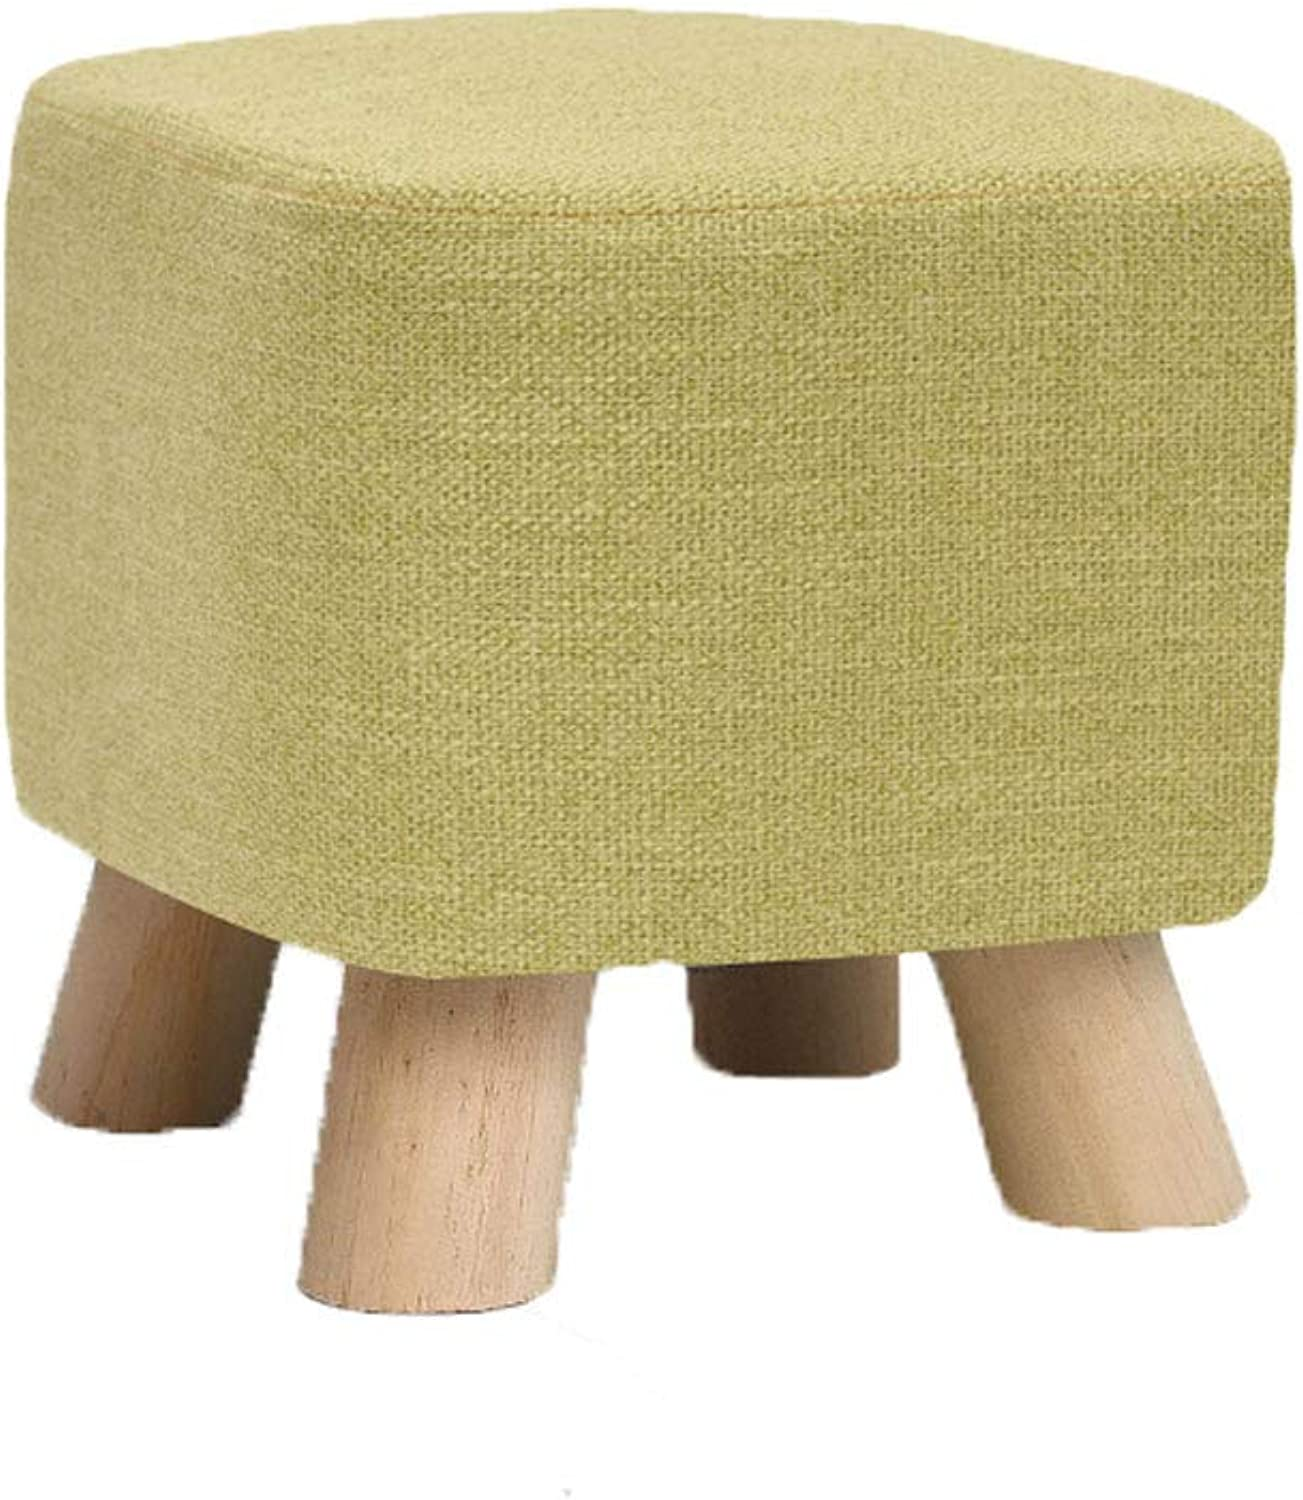 NJ STOOLS- Solid Wood shoes Stool Creative Square Stool Fabric Stool Sofa Stool Coffee Table Stool Home Stool (color   Green, Size   28x28x25cm)